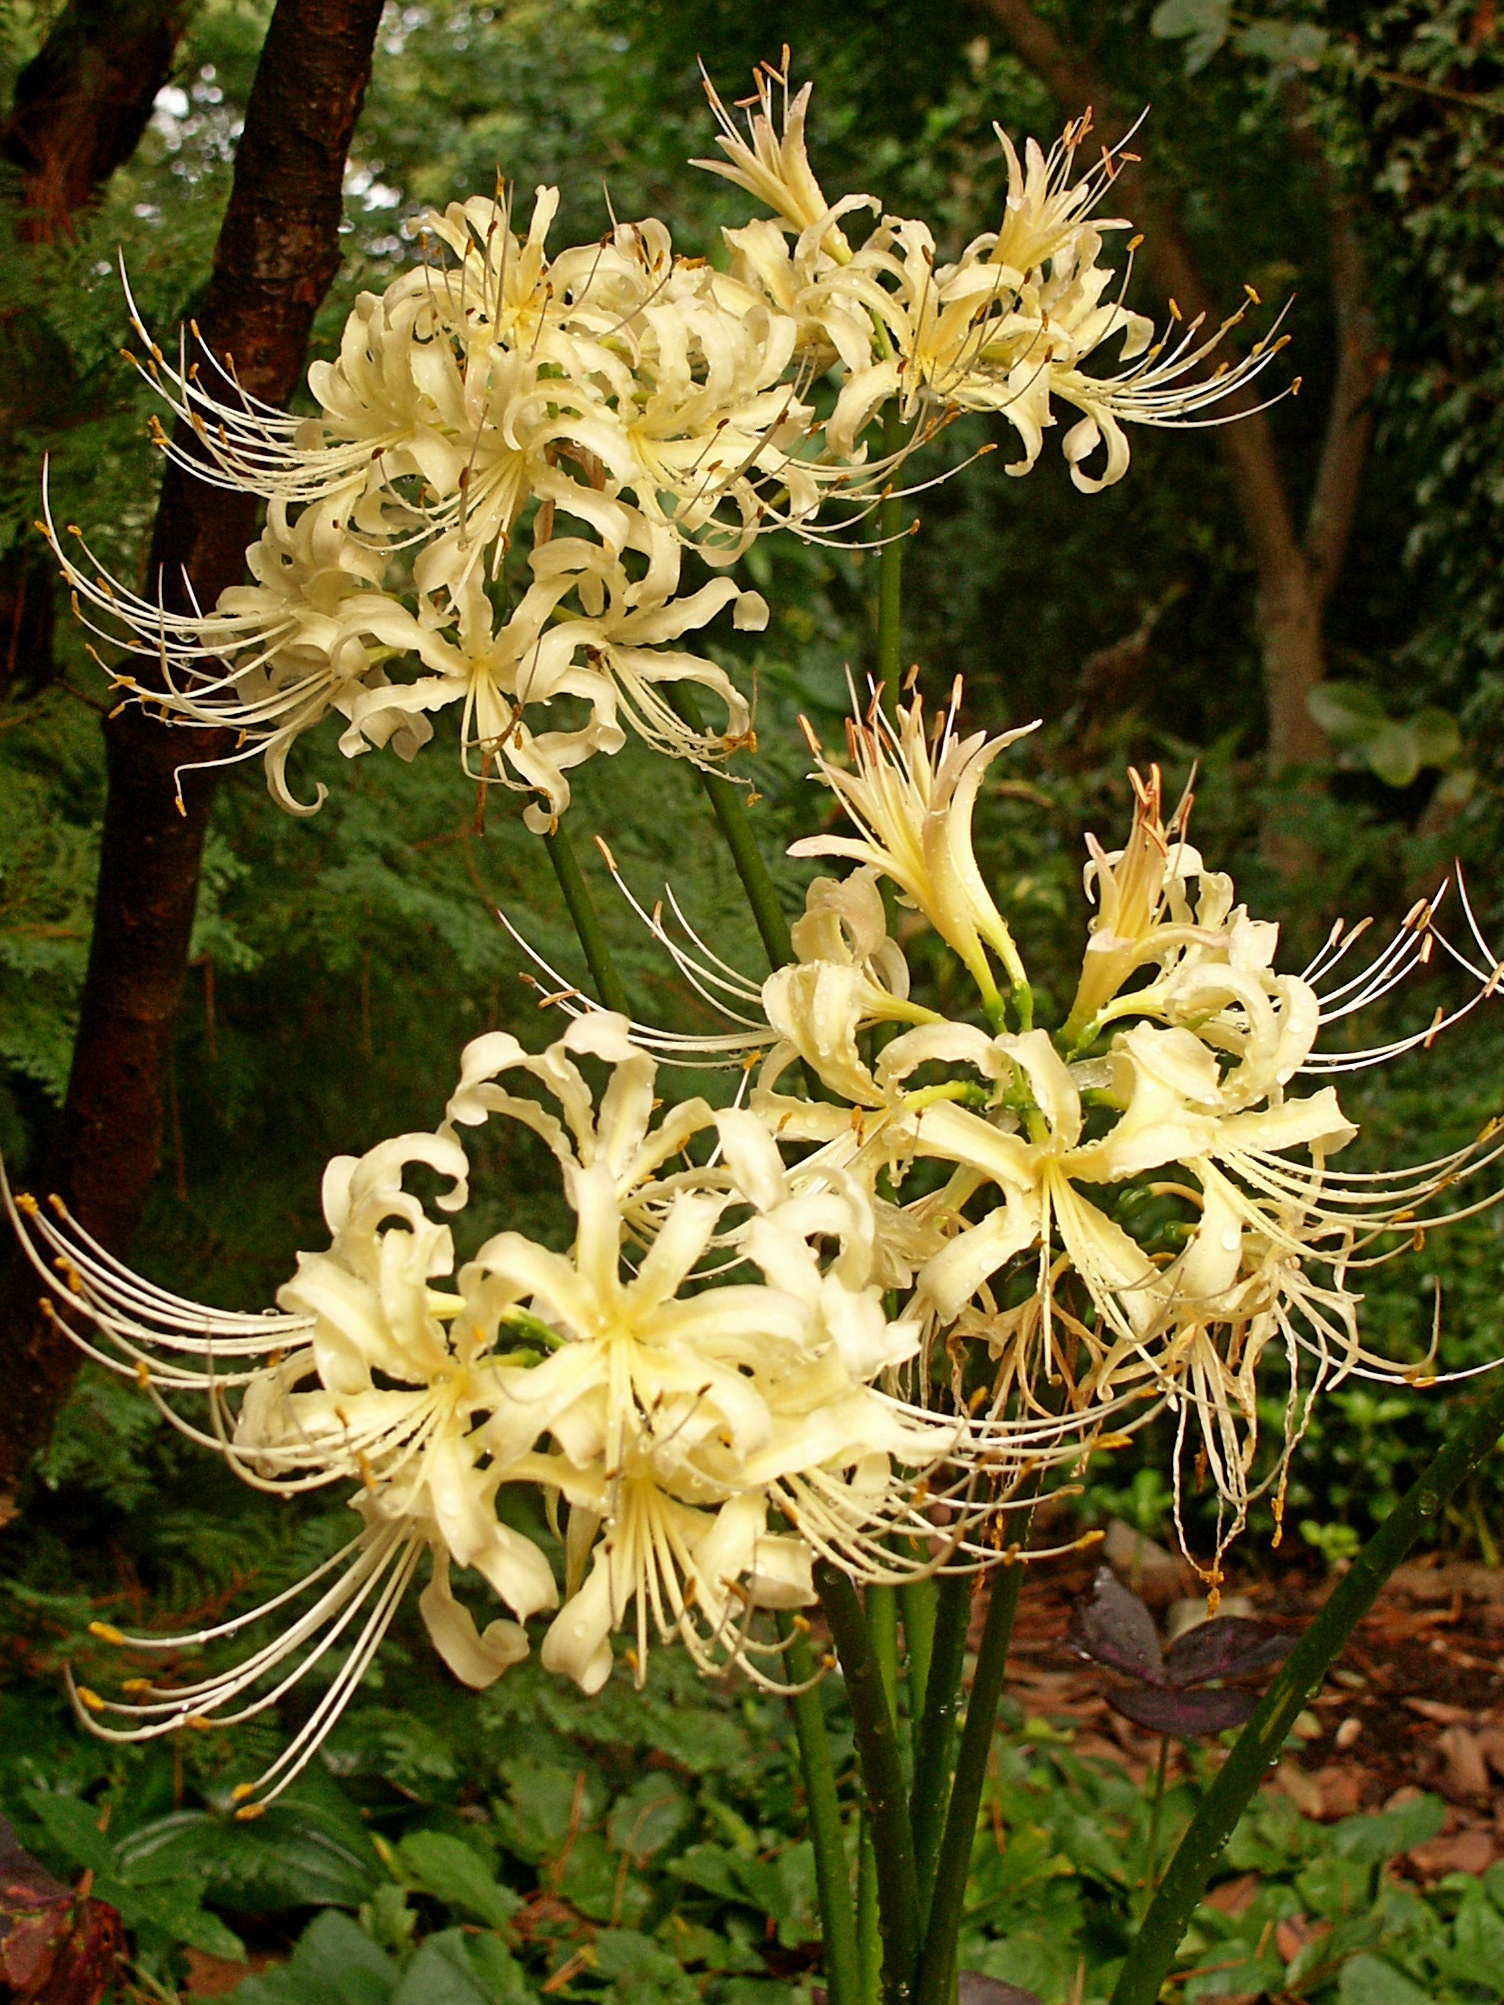 Lycoris x straminea 'Buttermint' @ JLBG - a form originally obtained from China via Jim Waddick, and named by PDN in 2011